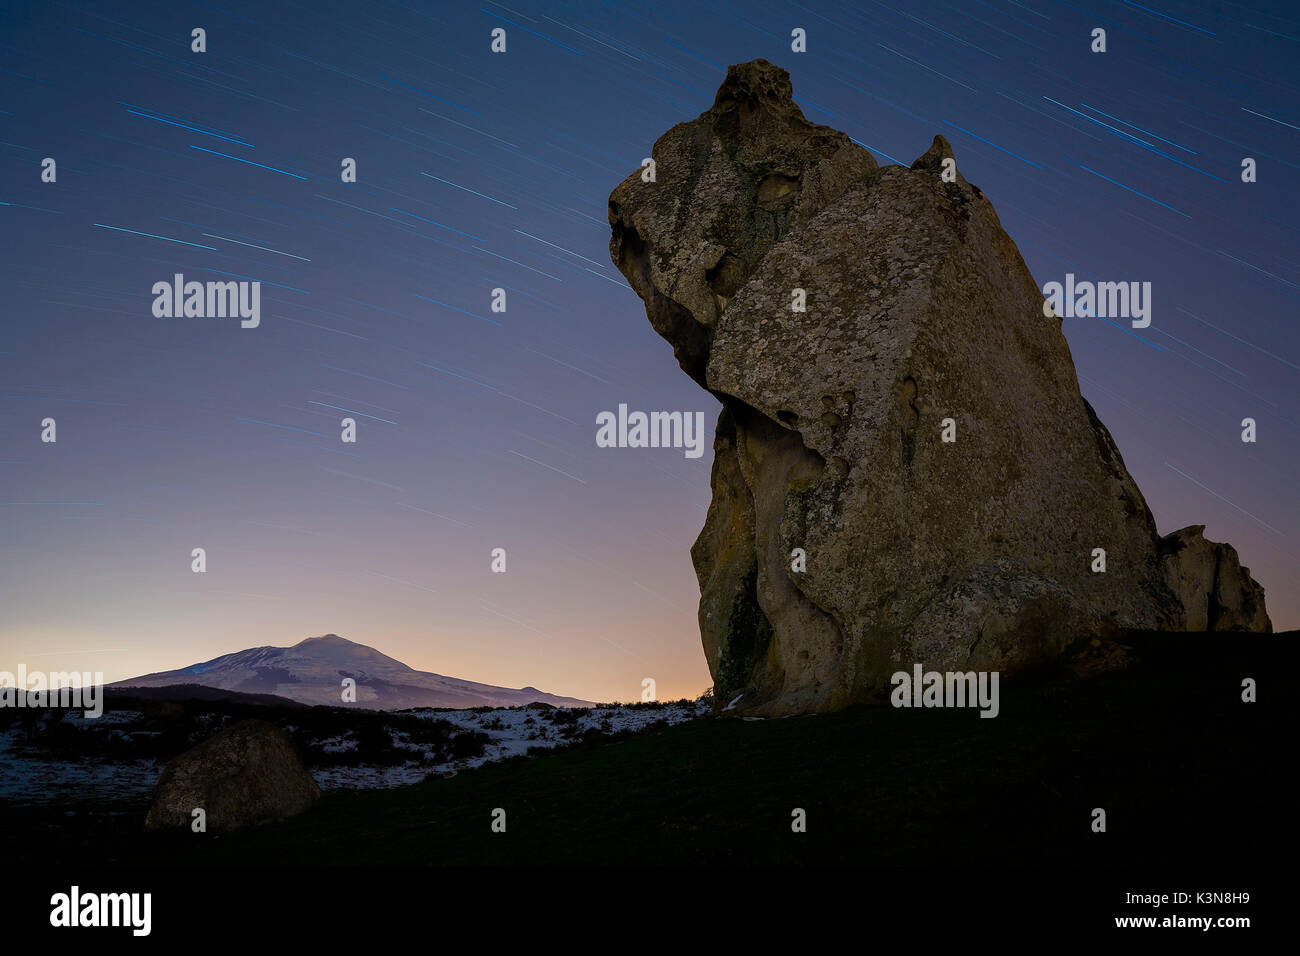 Megaliths of the Malabotta forest and Etna, Sicily, Italy, Europe - Stock Image